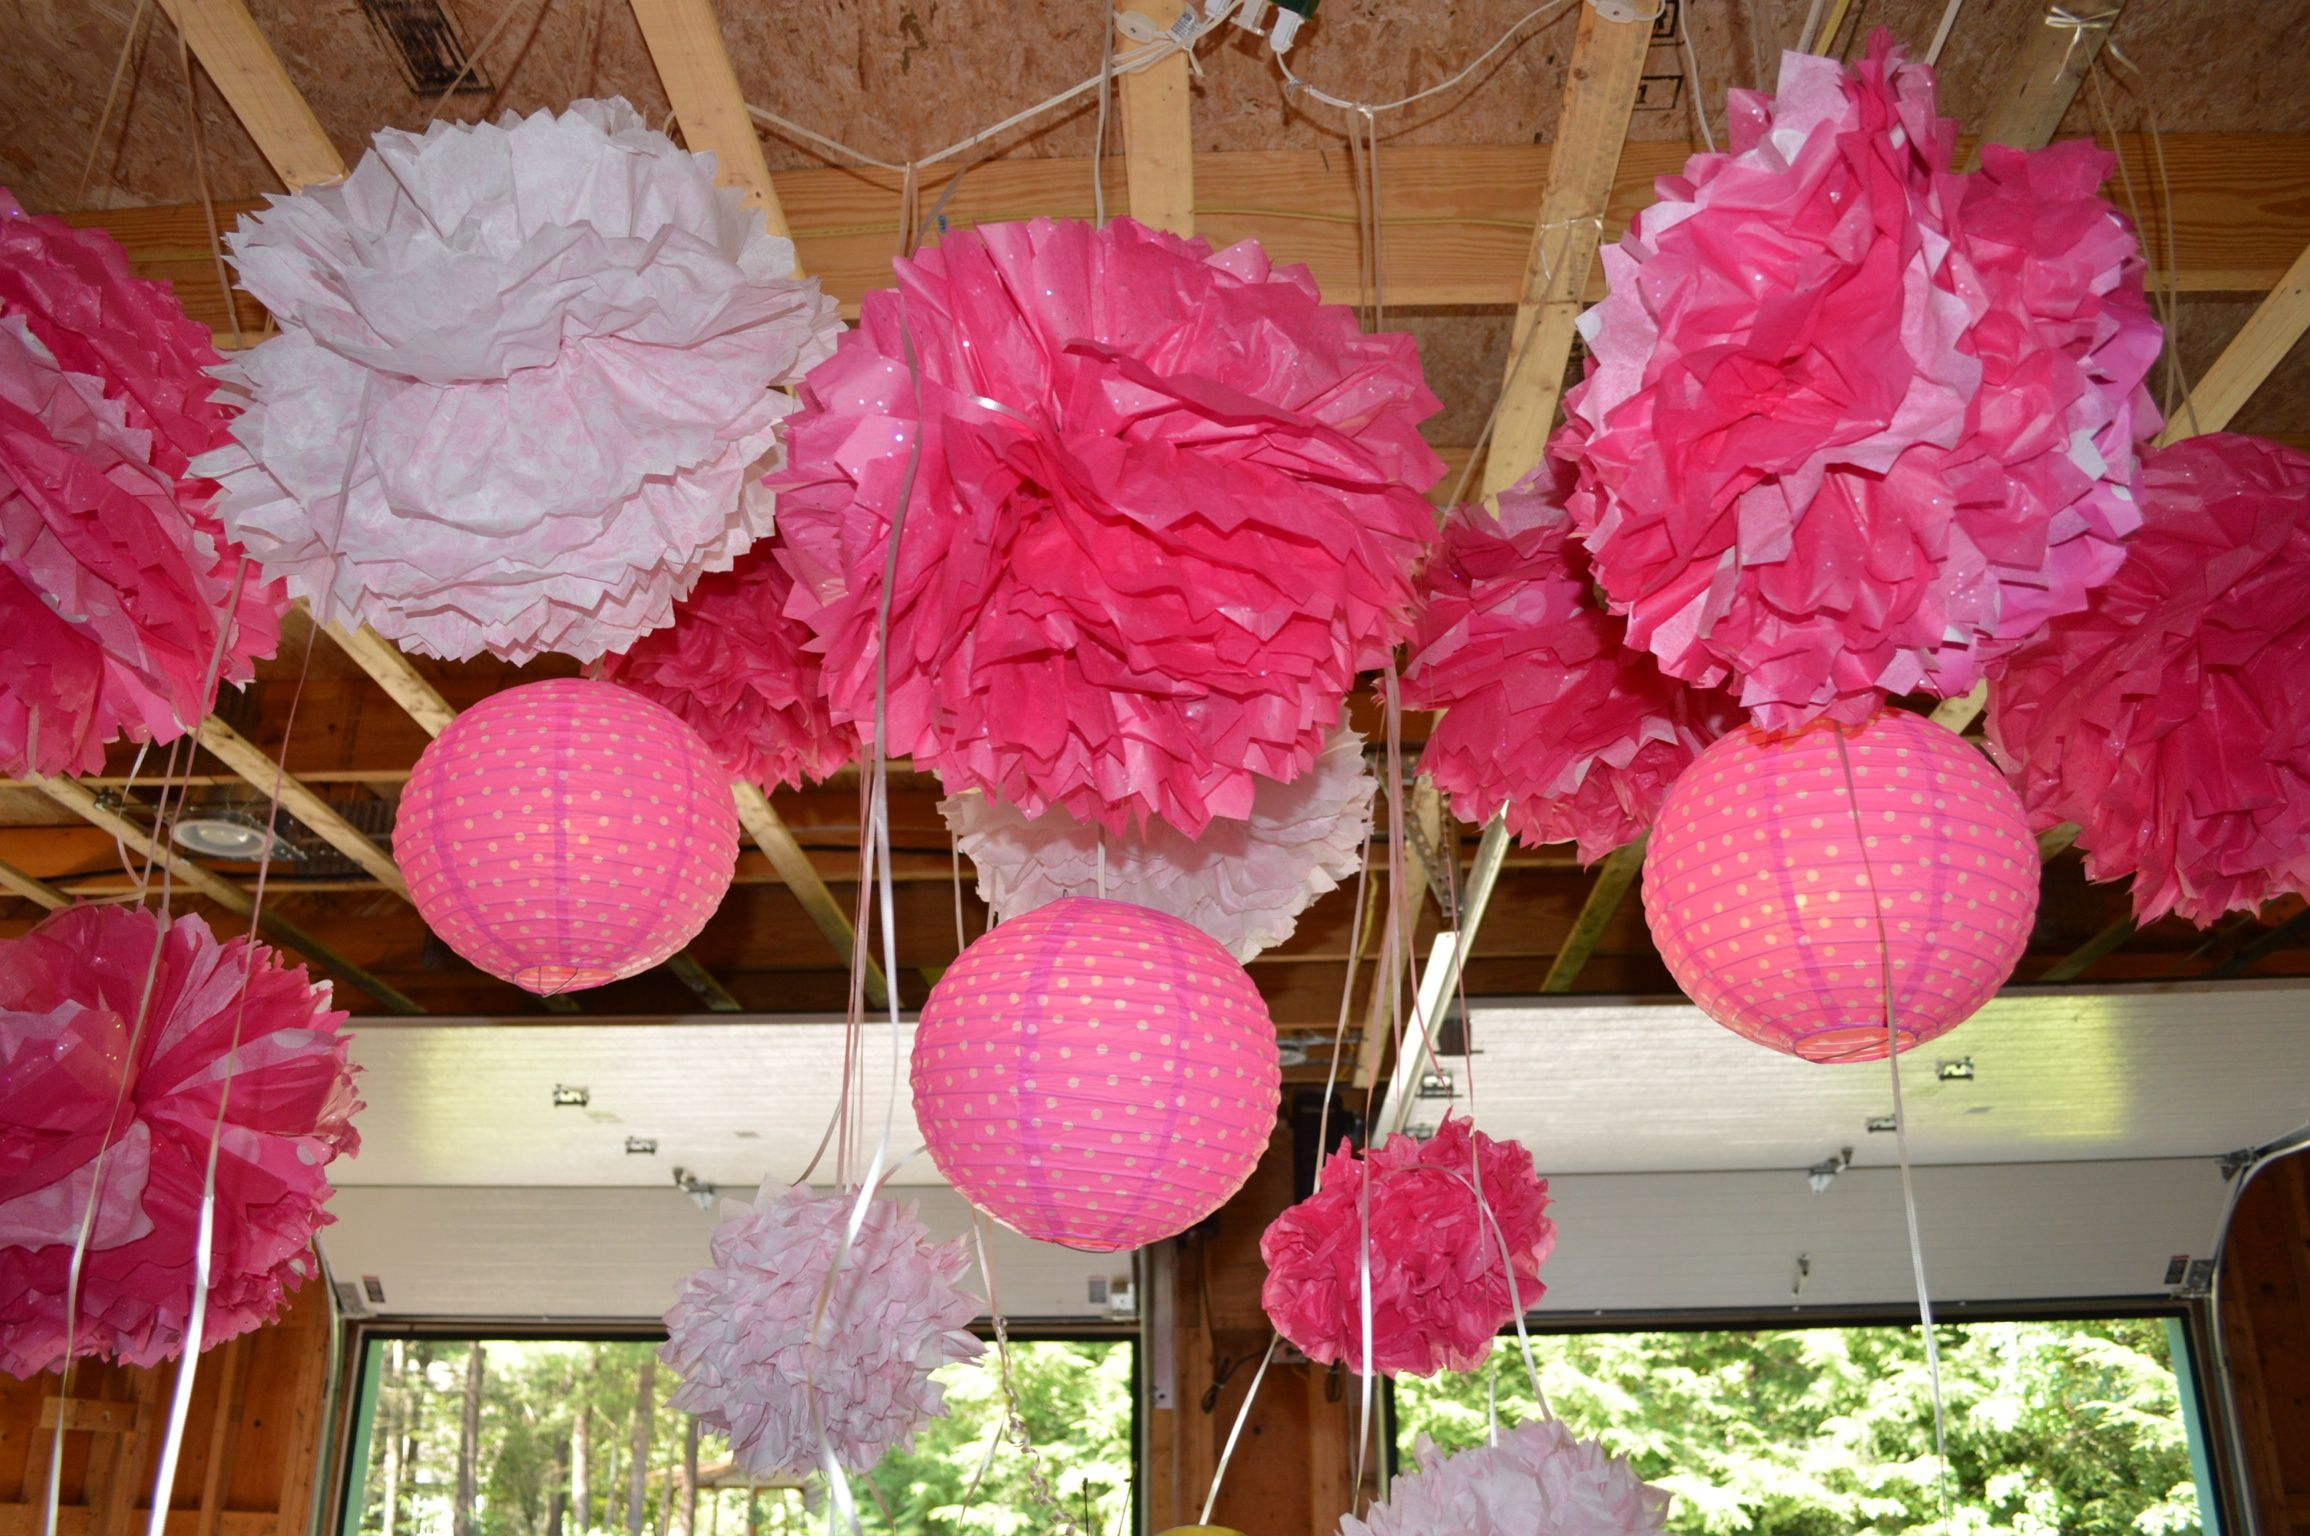 Pin By Allie Wright On What I Love Affordable Party Decorations Garage Party Decorations Cupcake Wars Party